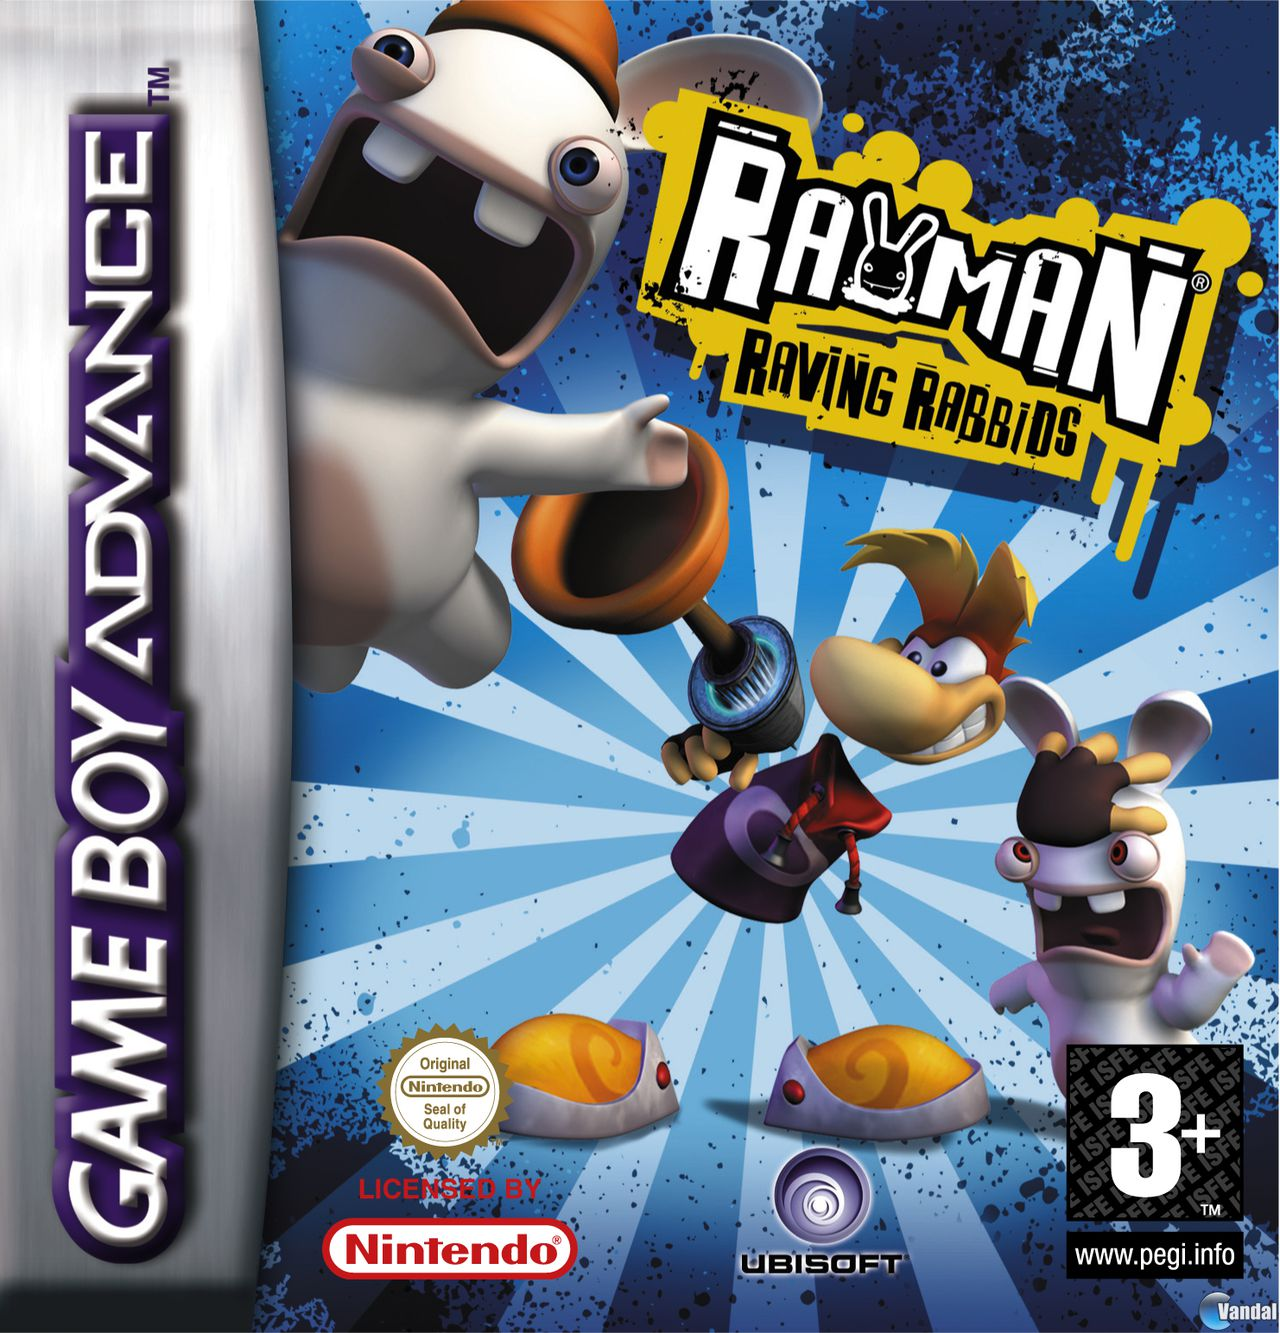 Imagen 6 de Rayman Raving Rabbids para Game Boy Advance